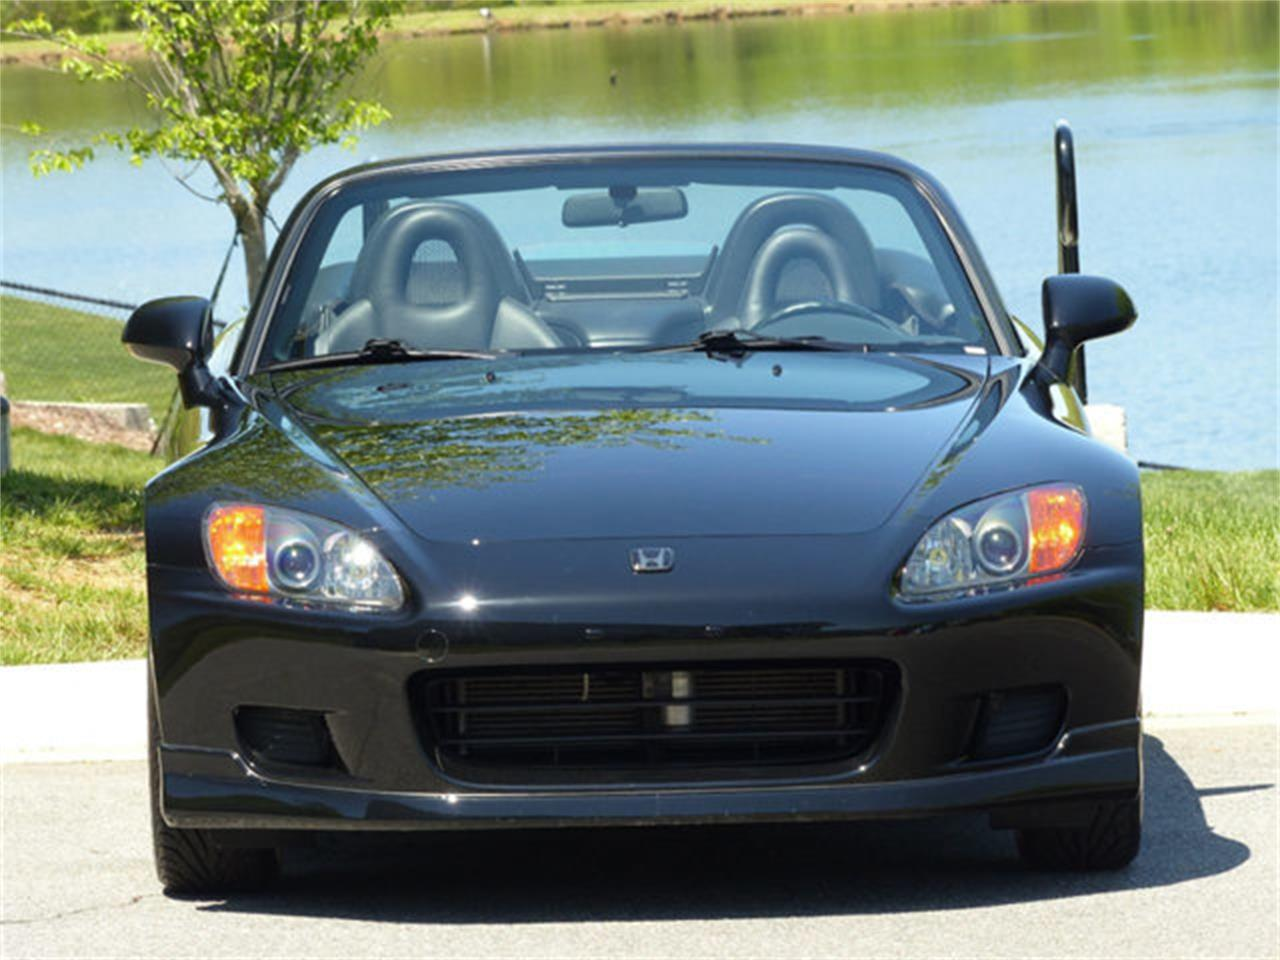 Large Picture of 2000 Honda S2000 located in Charlotte North Carolina - $39,990.00 Offered by Hendrick Performance - NAWS